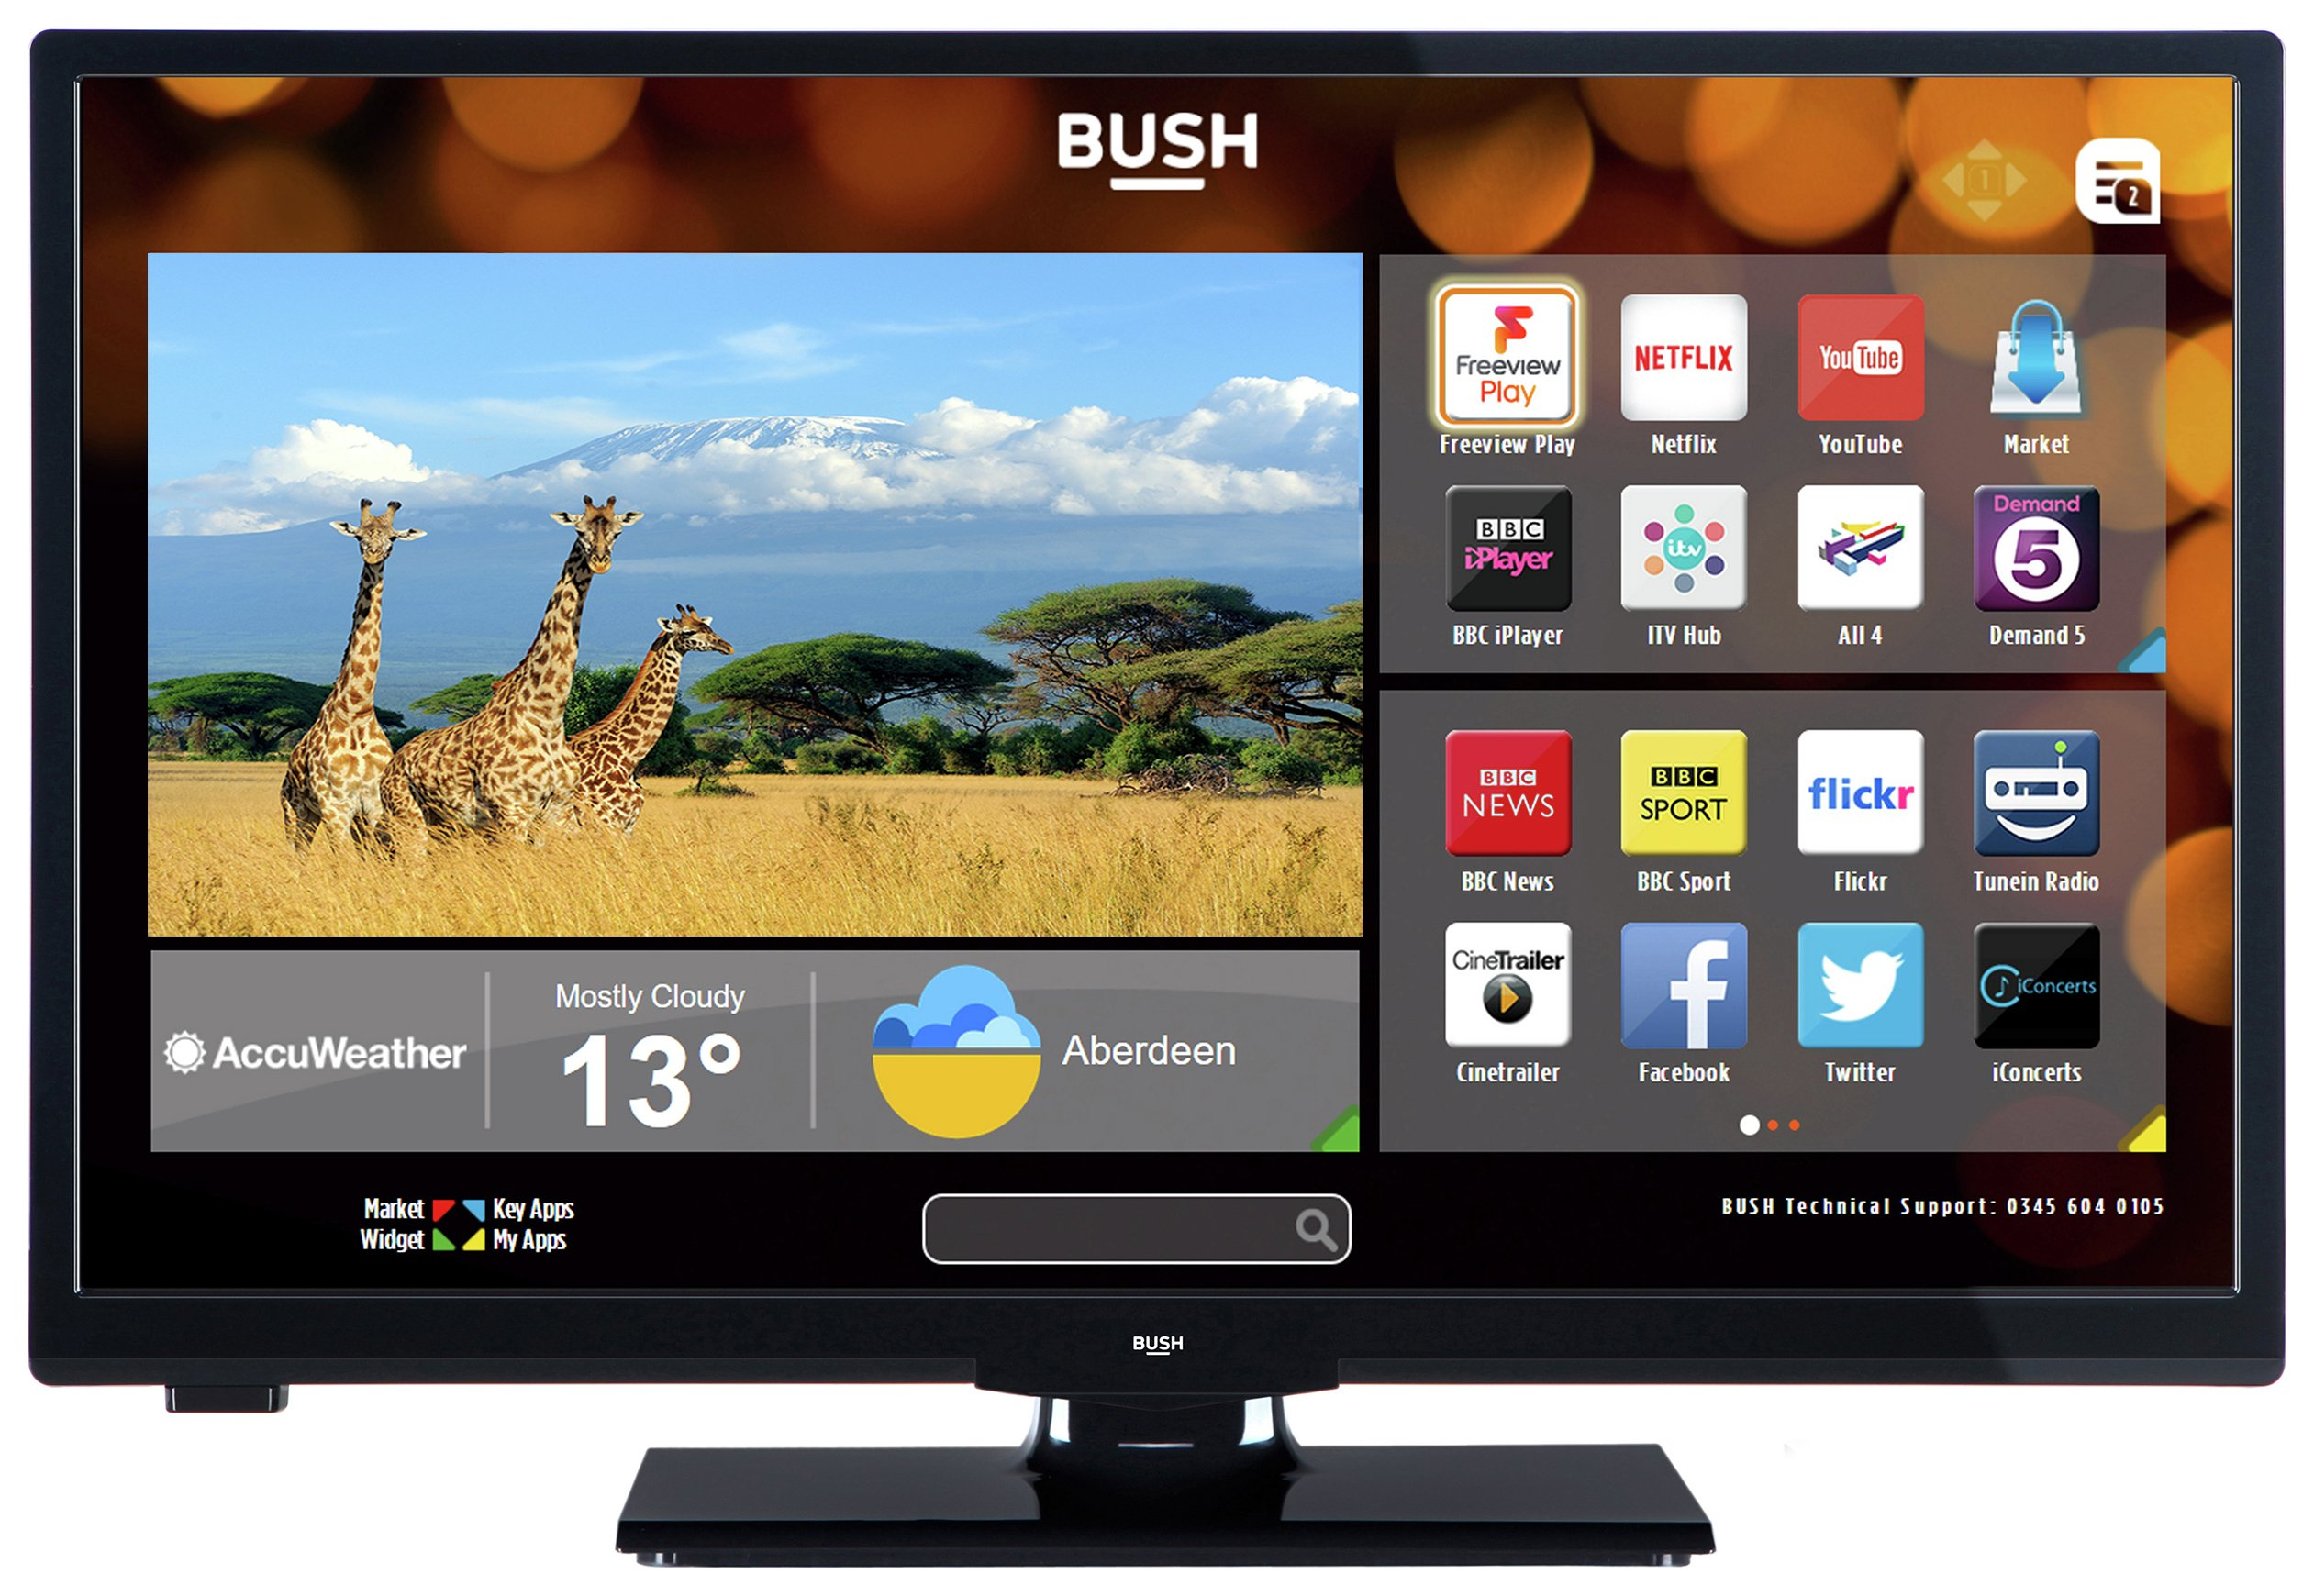 hitachi 24 inch hd ready freeview play smart led tv. bush 24 inch hd ready smart tv with dvd player - black hitachi hd freeview play led tv e